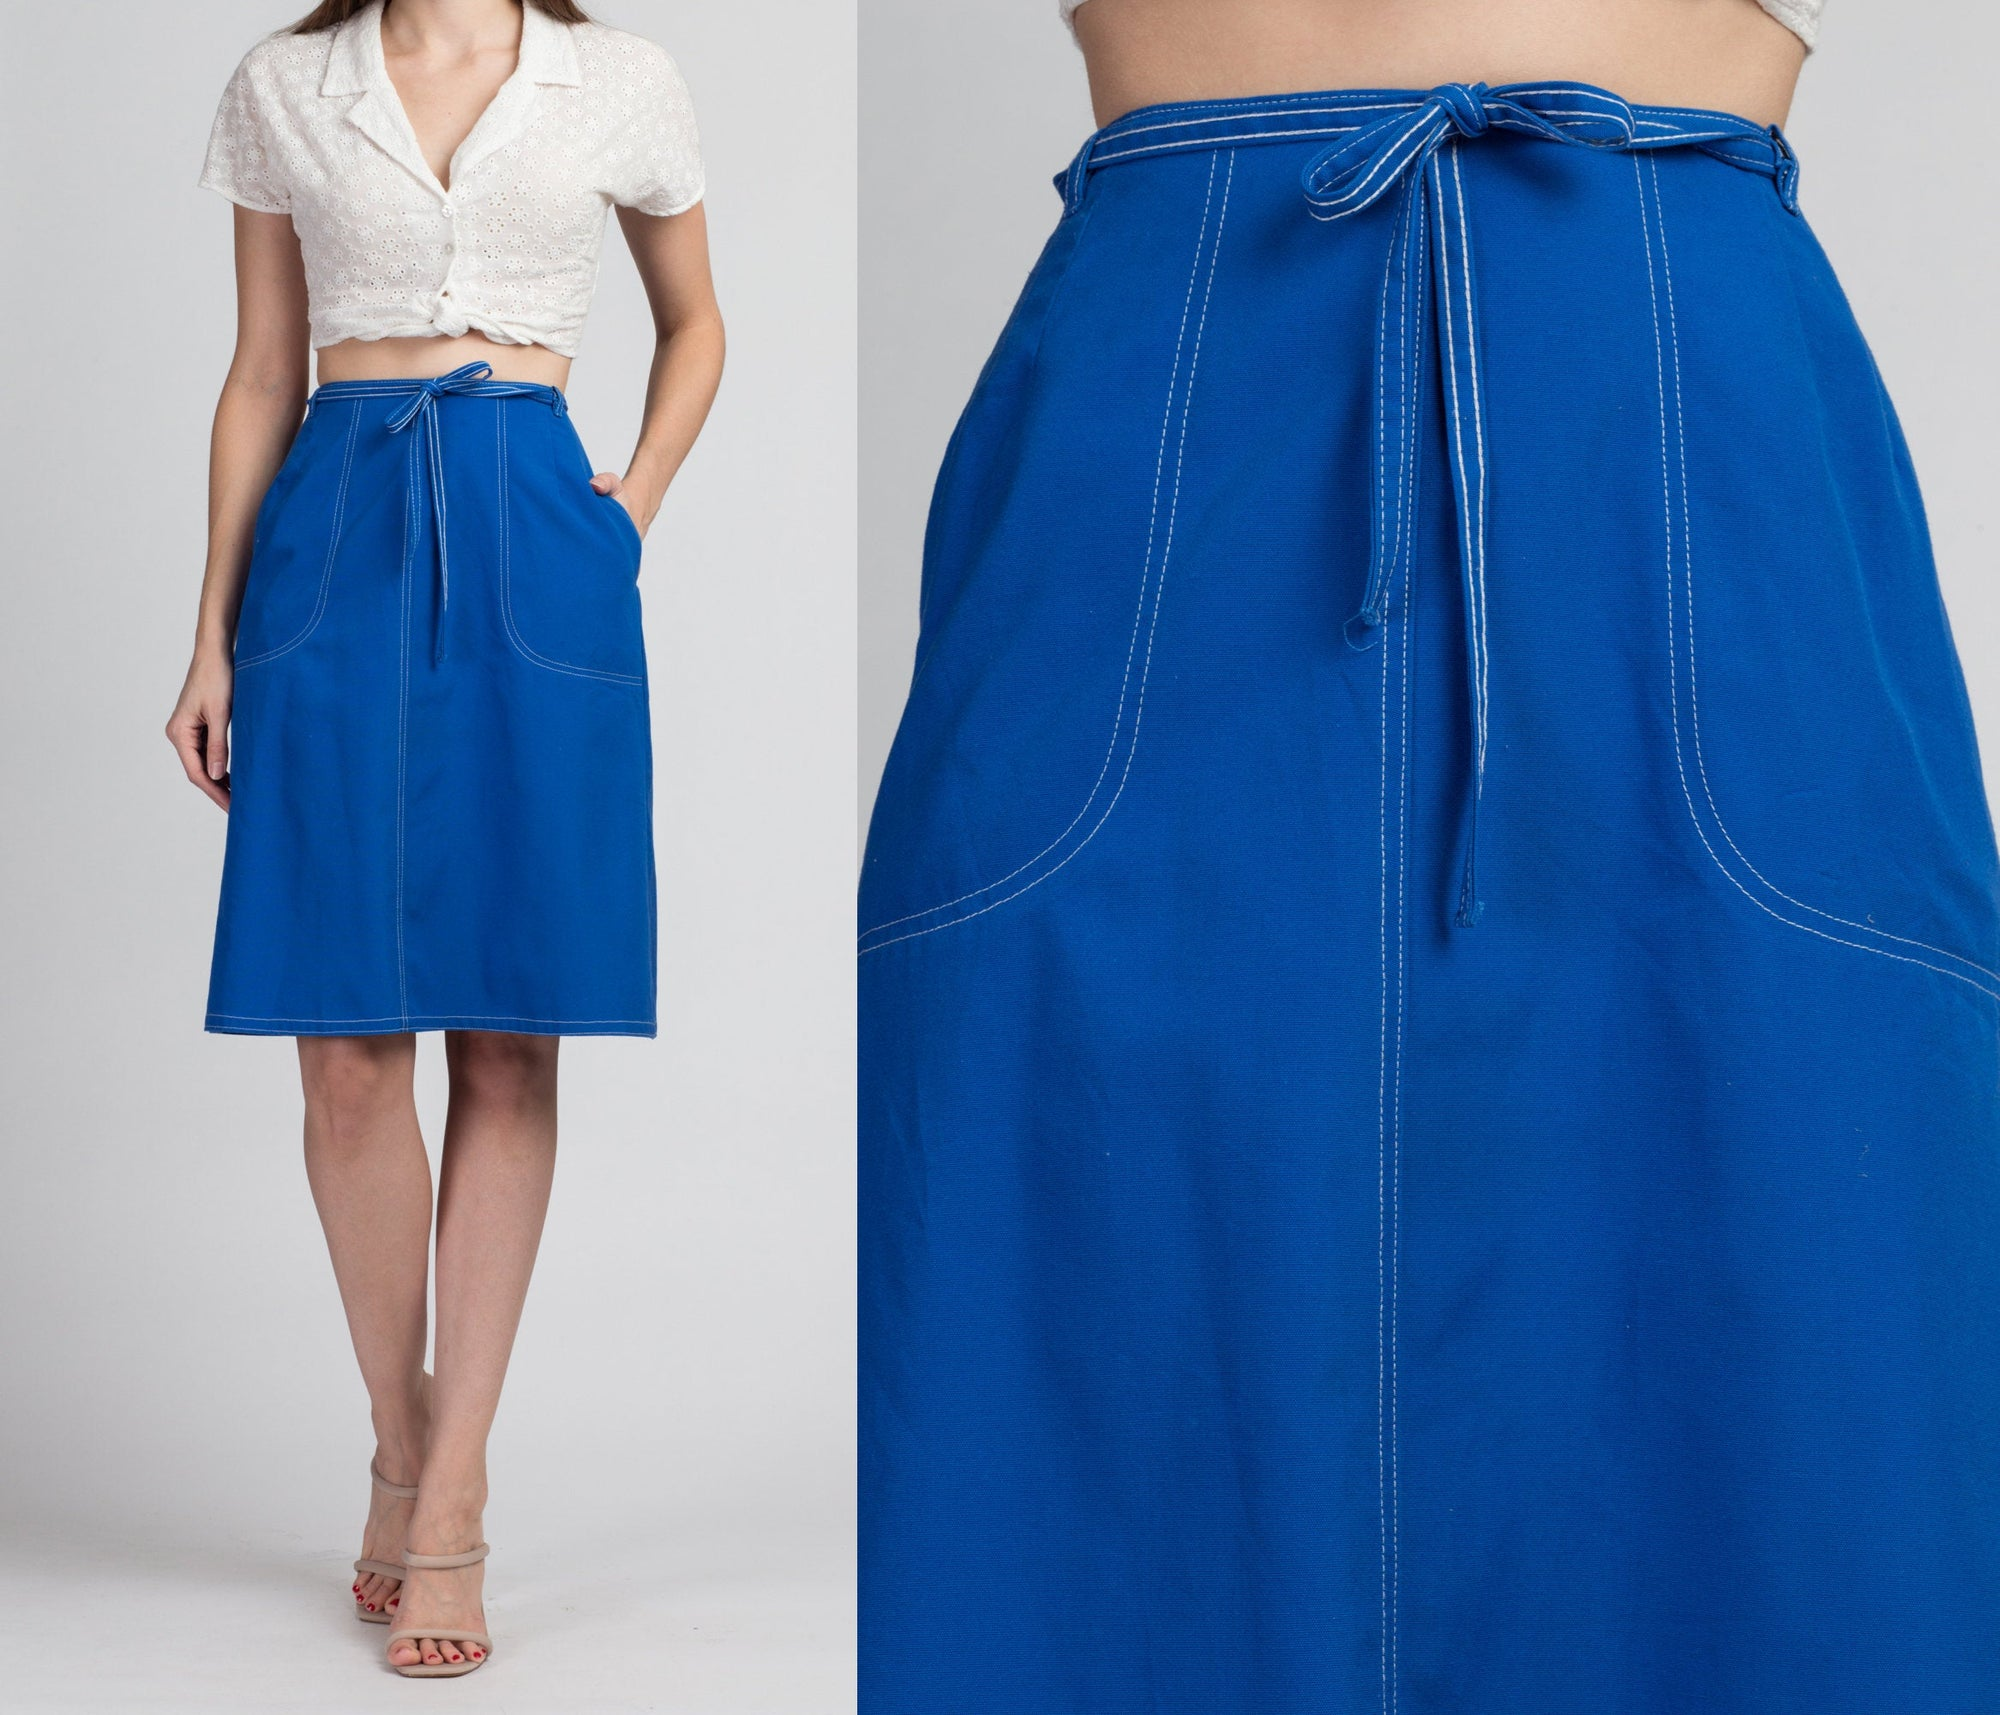 70s Blue Pocket Wrap Skirt - Medium